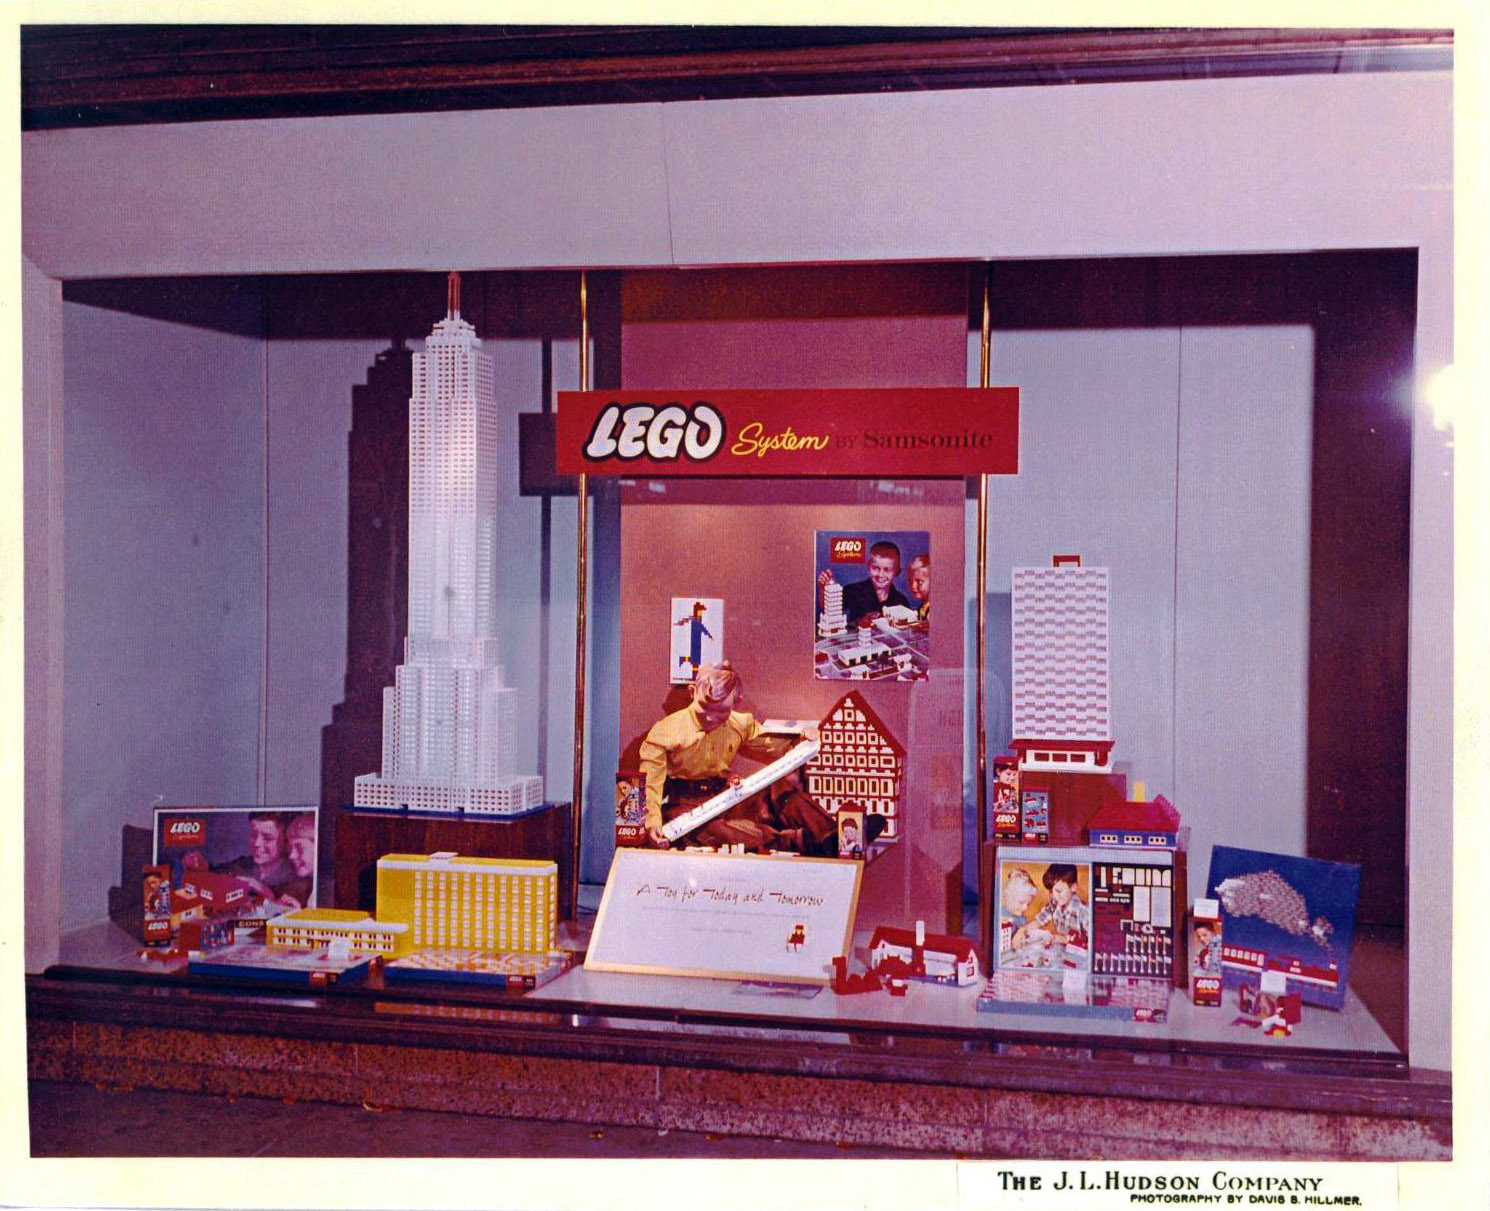 1962_lego_display_at_j.l._hudsons_in_detroit.jpg